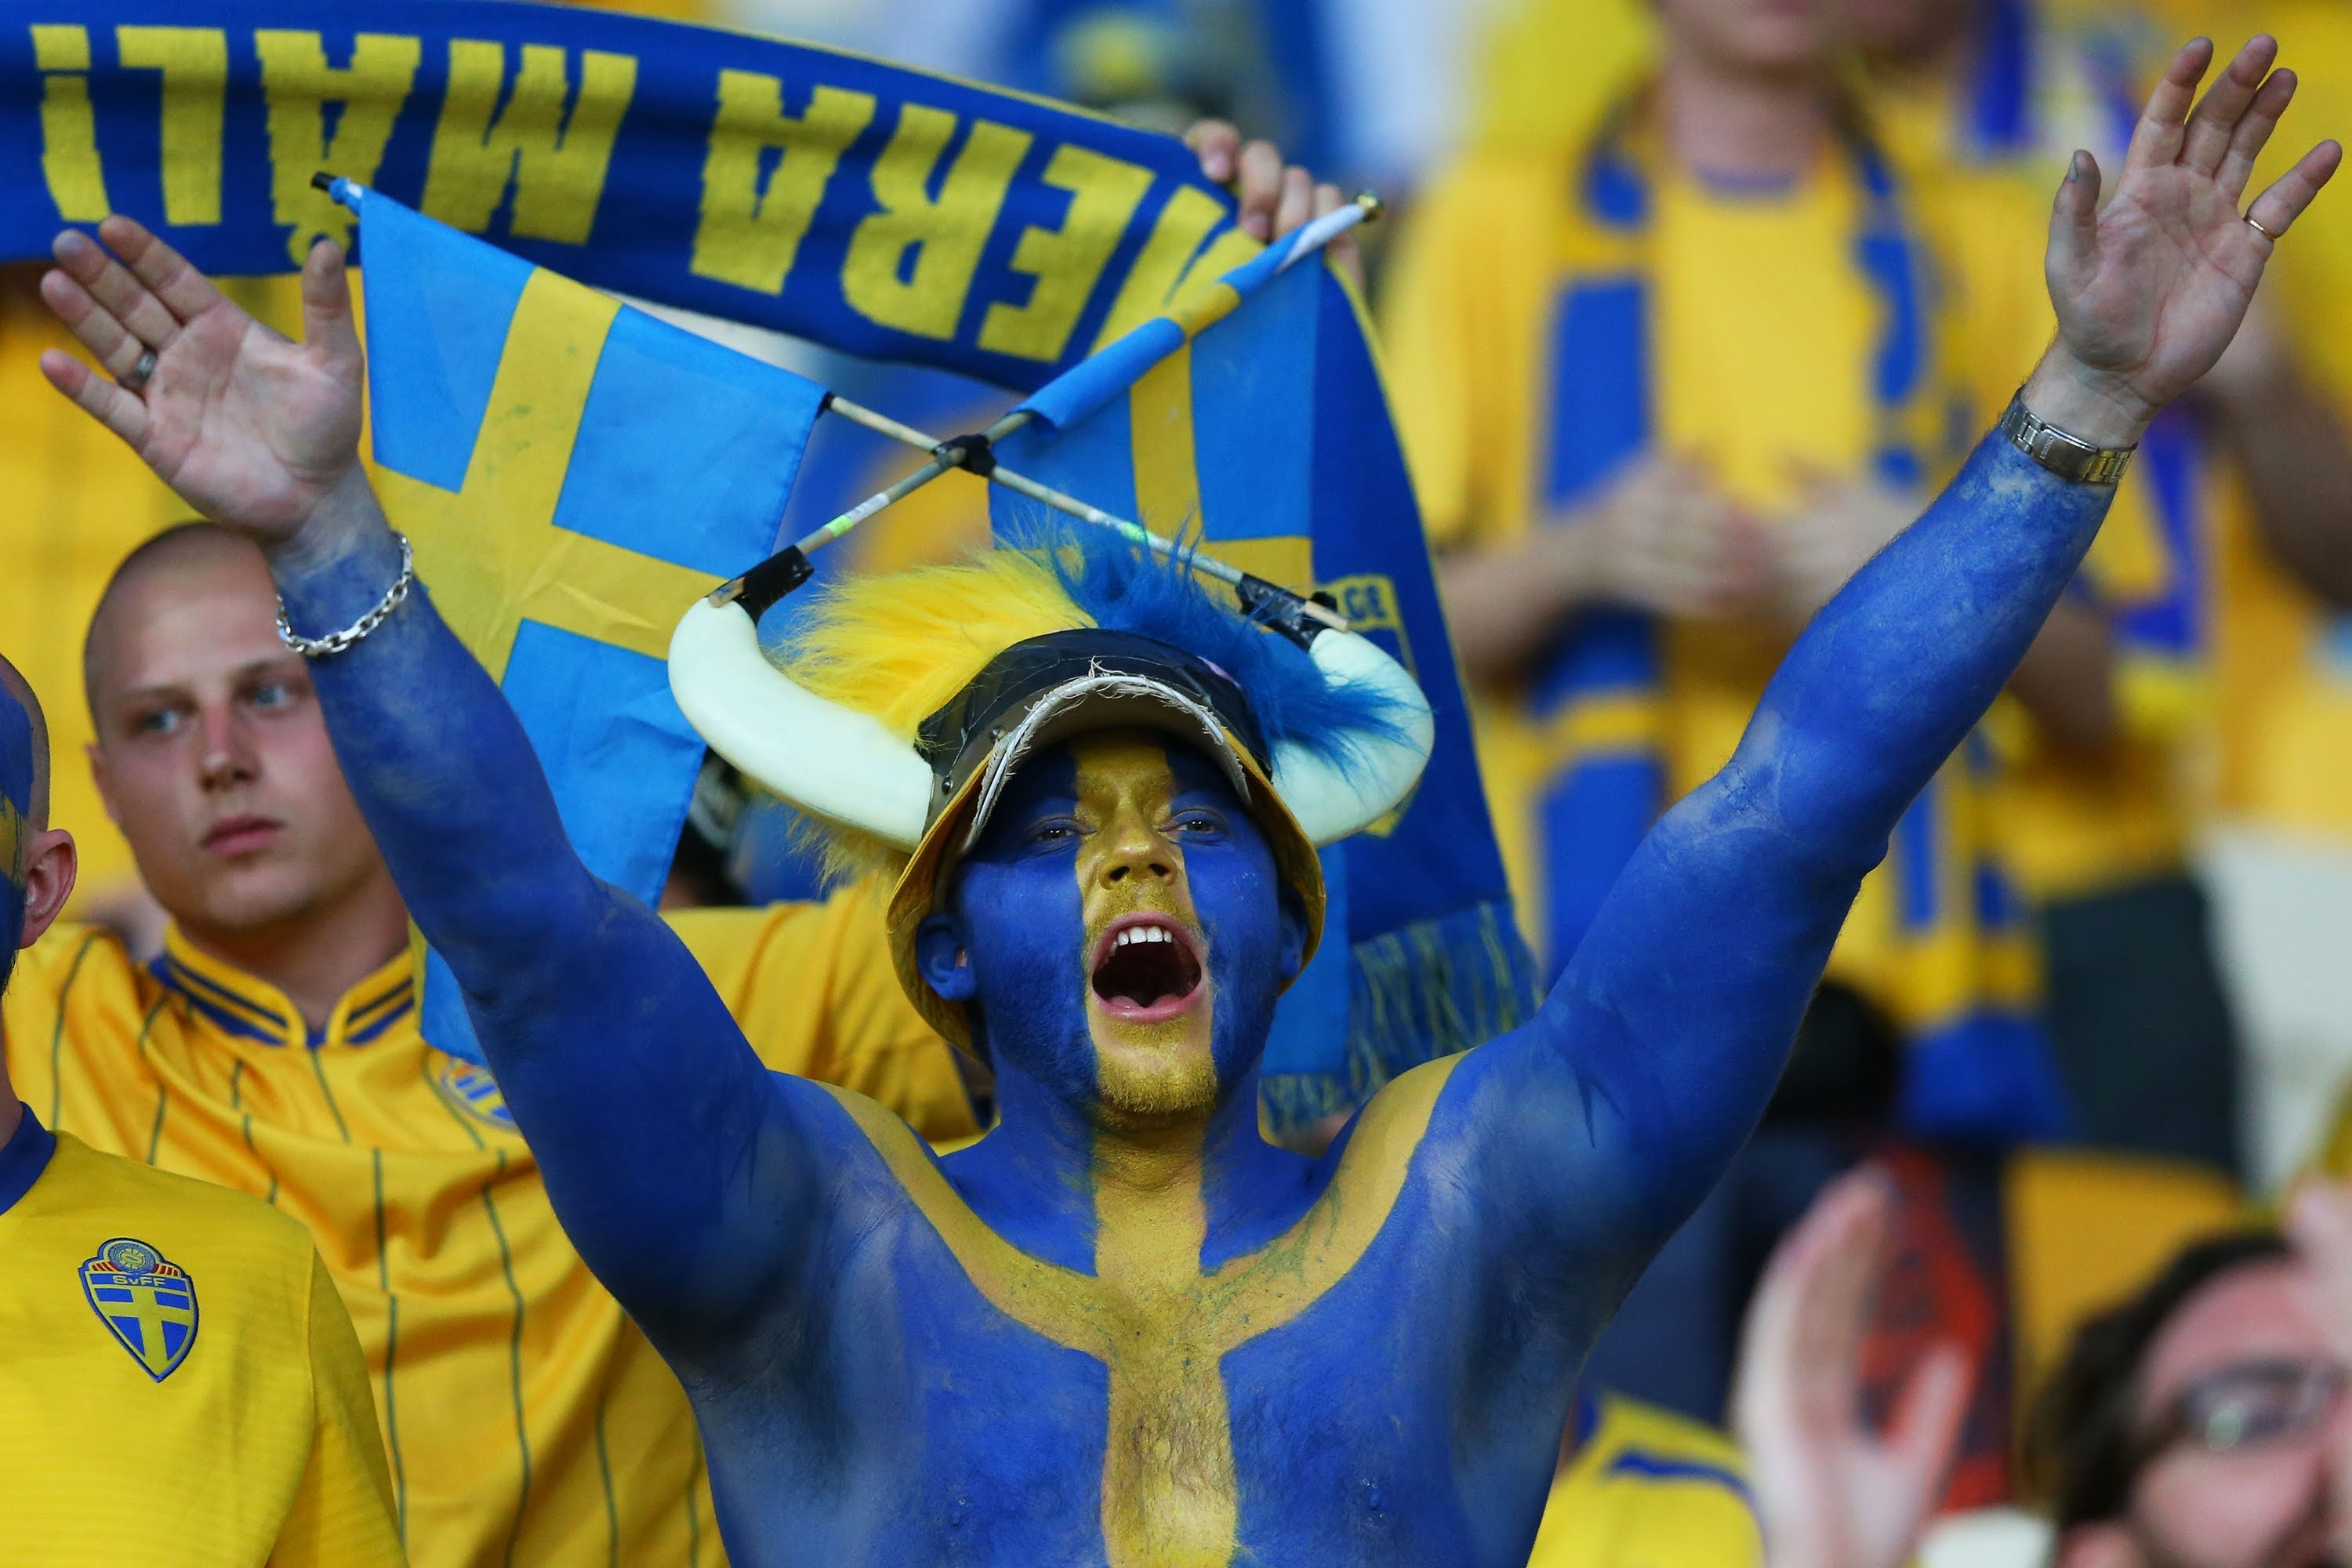 Swedish fans ready to boost confident of nation